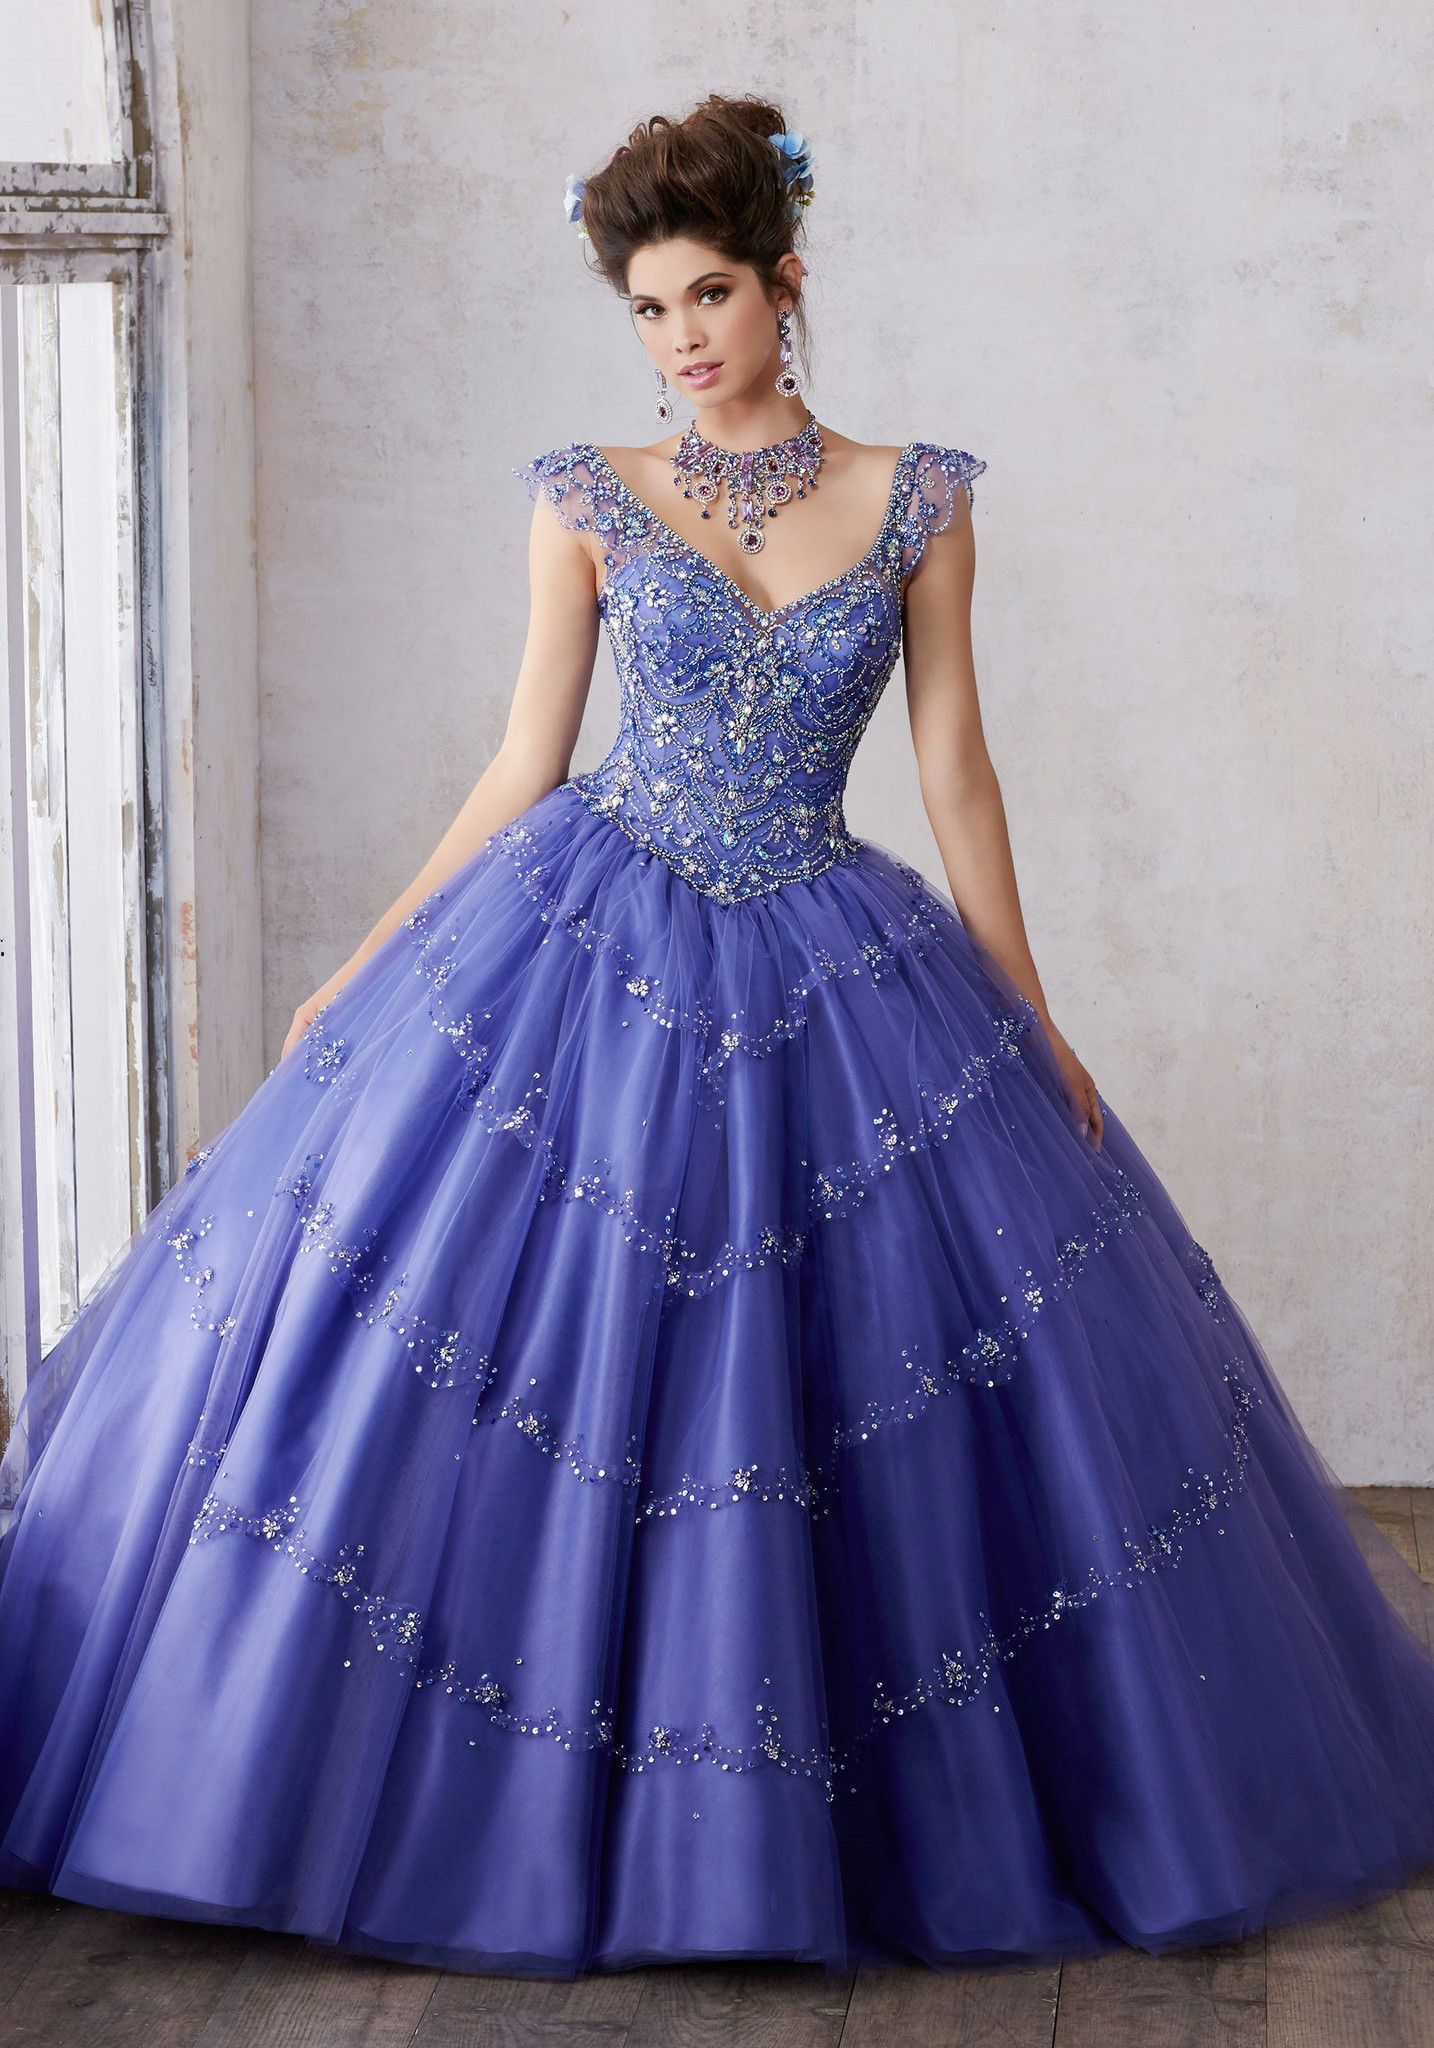 Mori Lee Quinceanera Dress 89136 | Pinterest | Mori lee, Gowns and ...